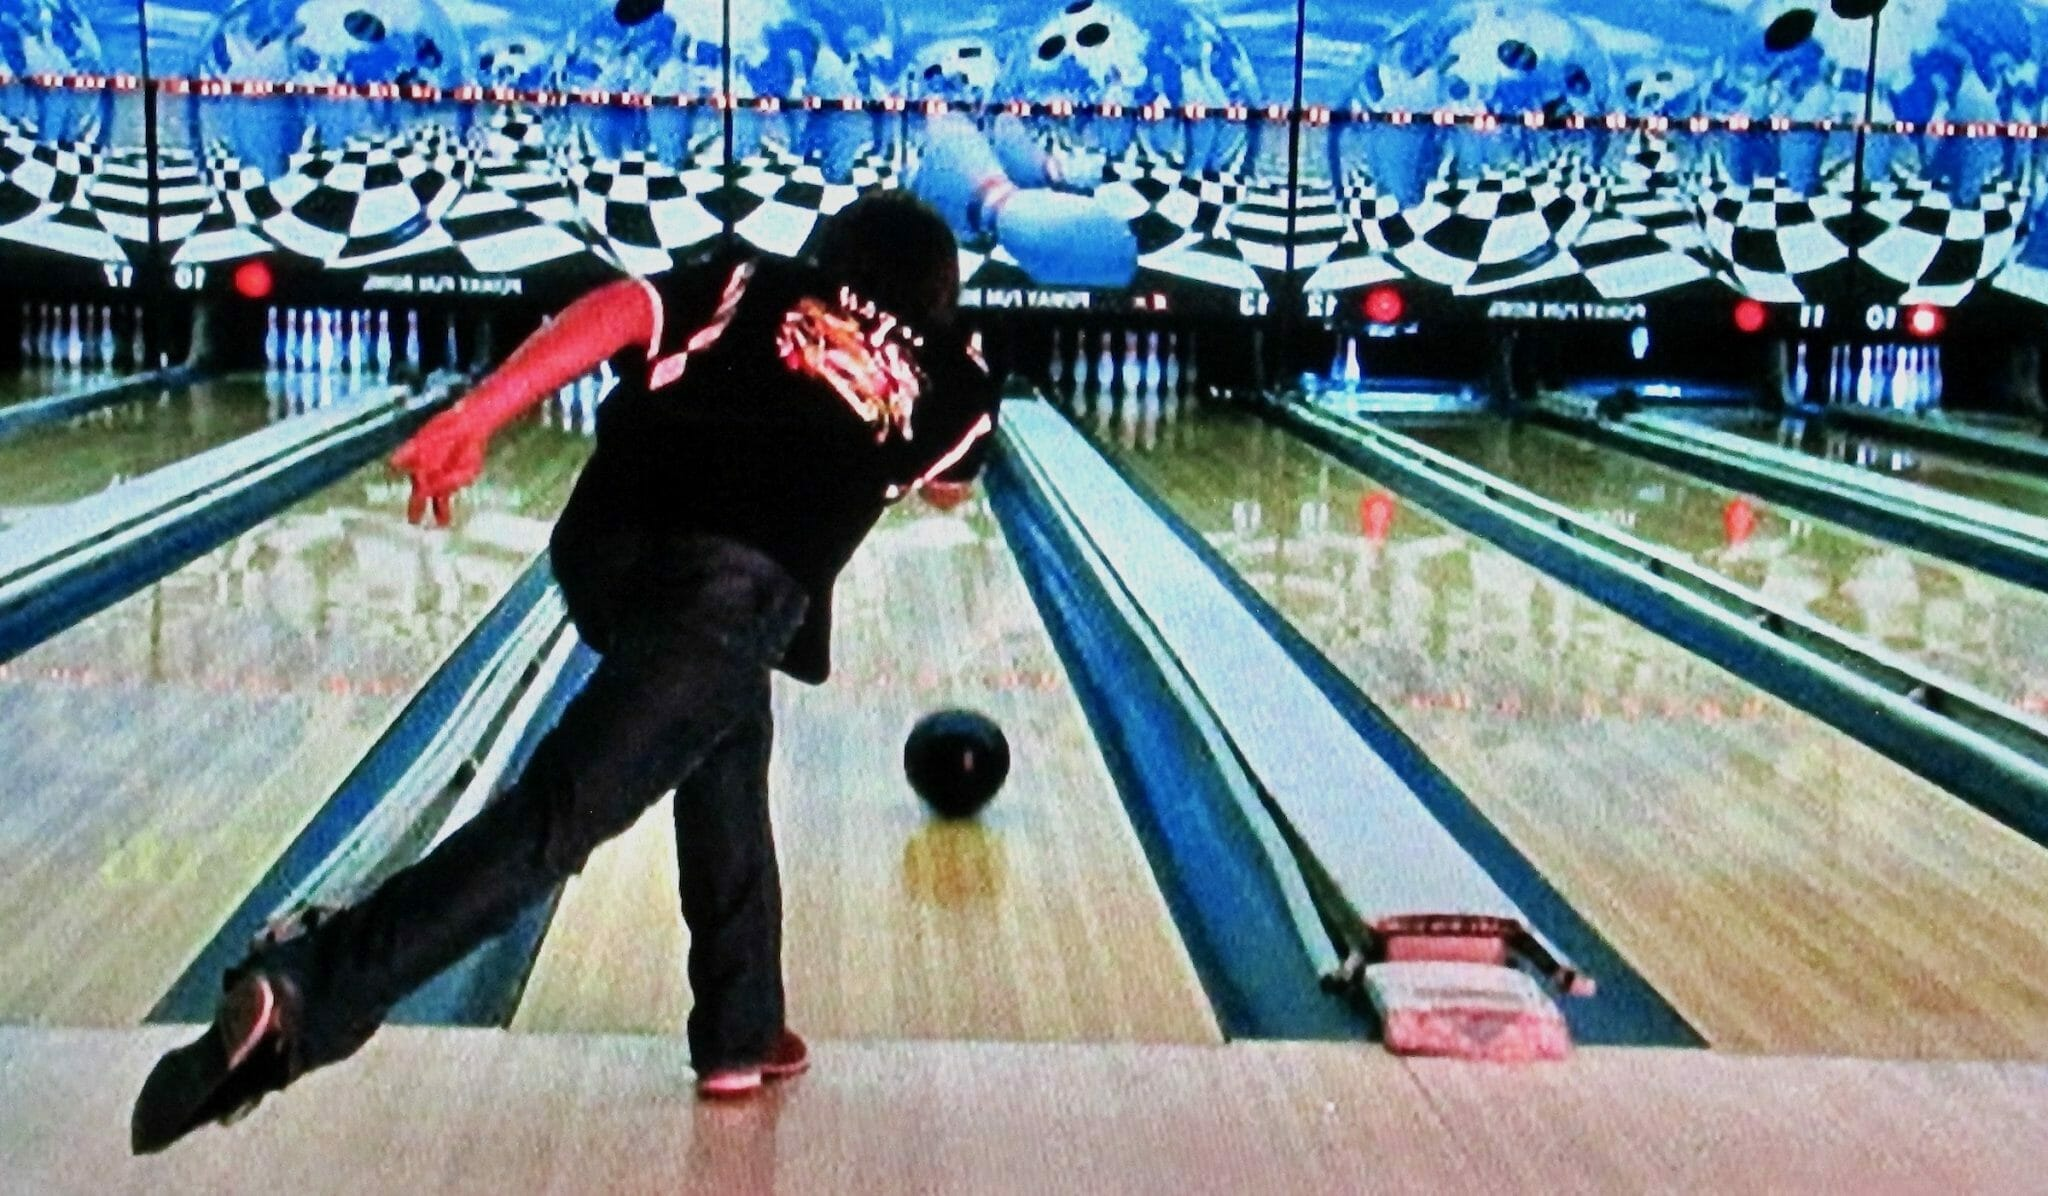 View of bowler rolling a strike